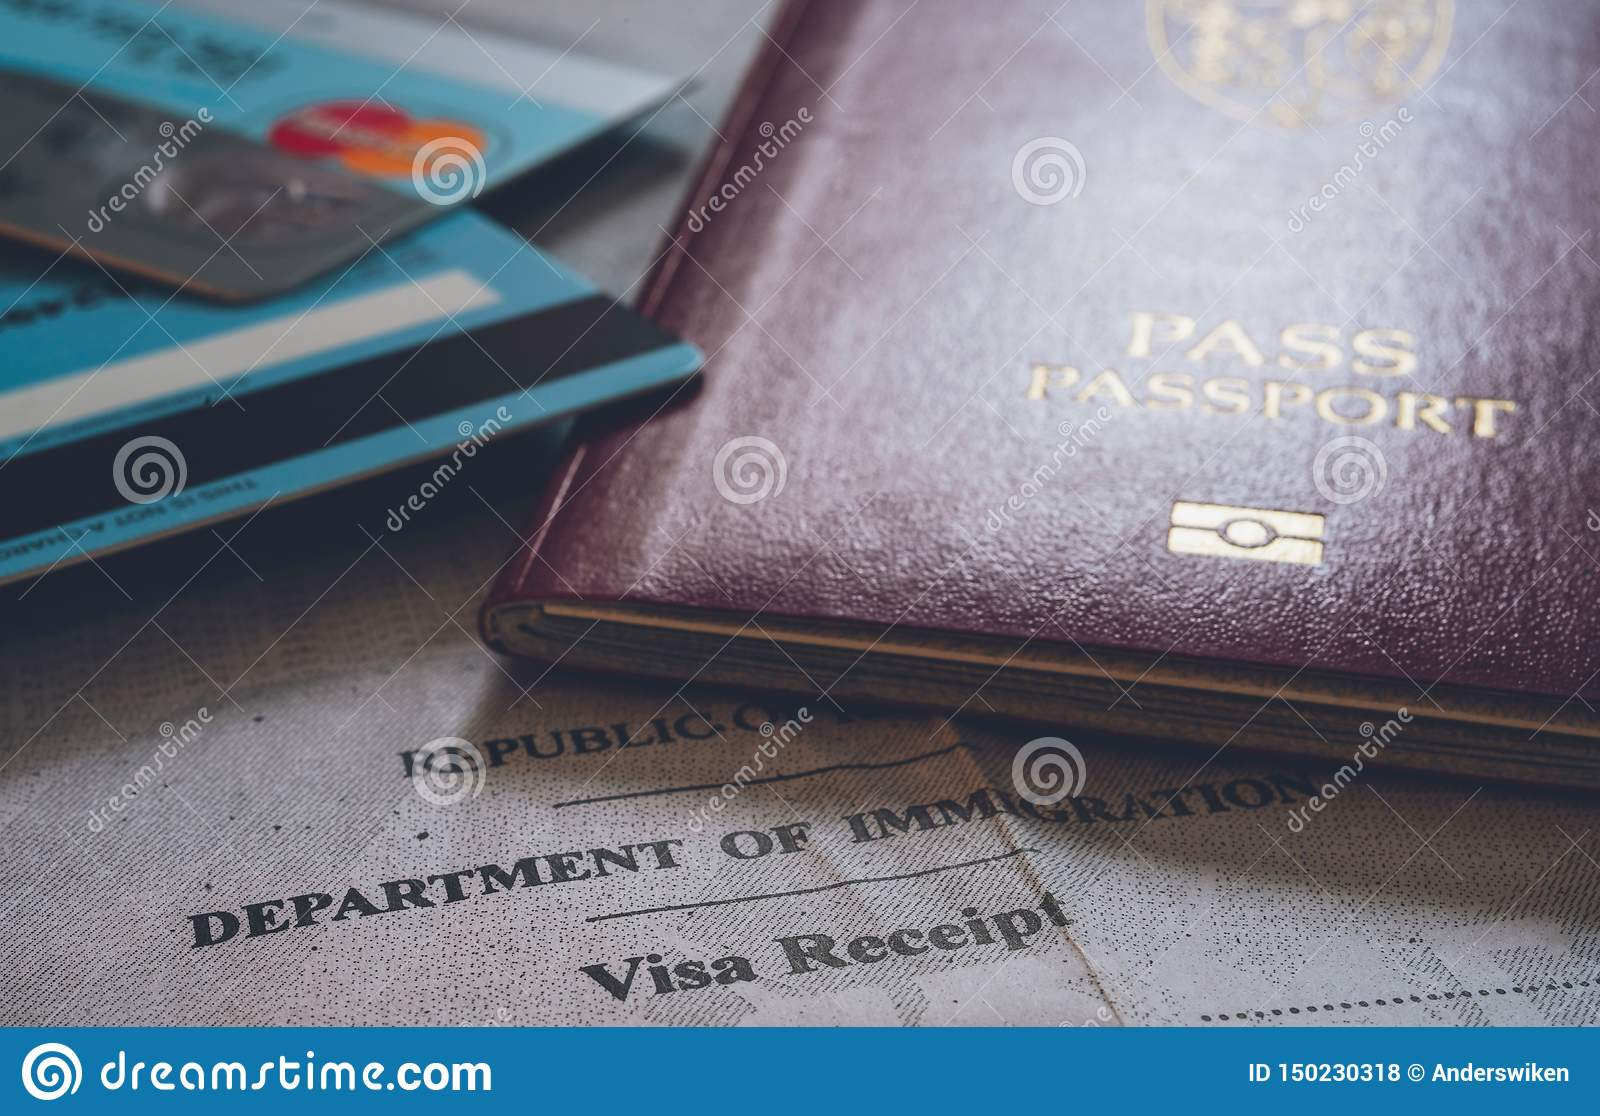 Passport document, banking cards and Immigration card receipt.